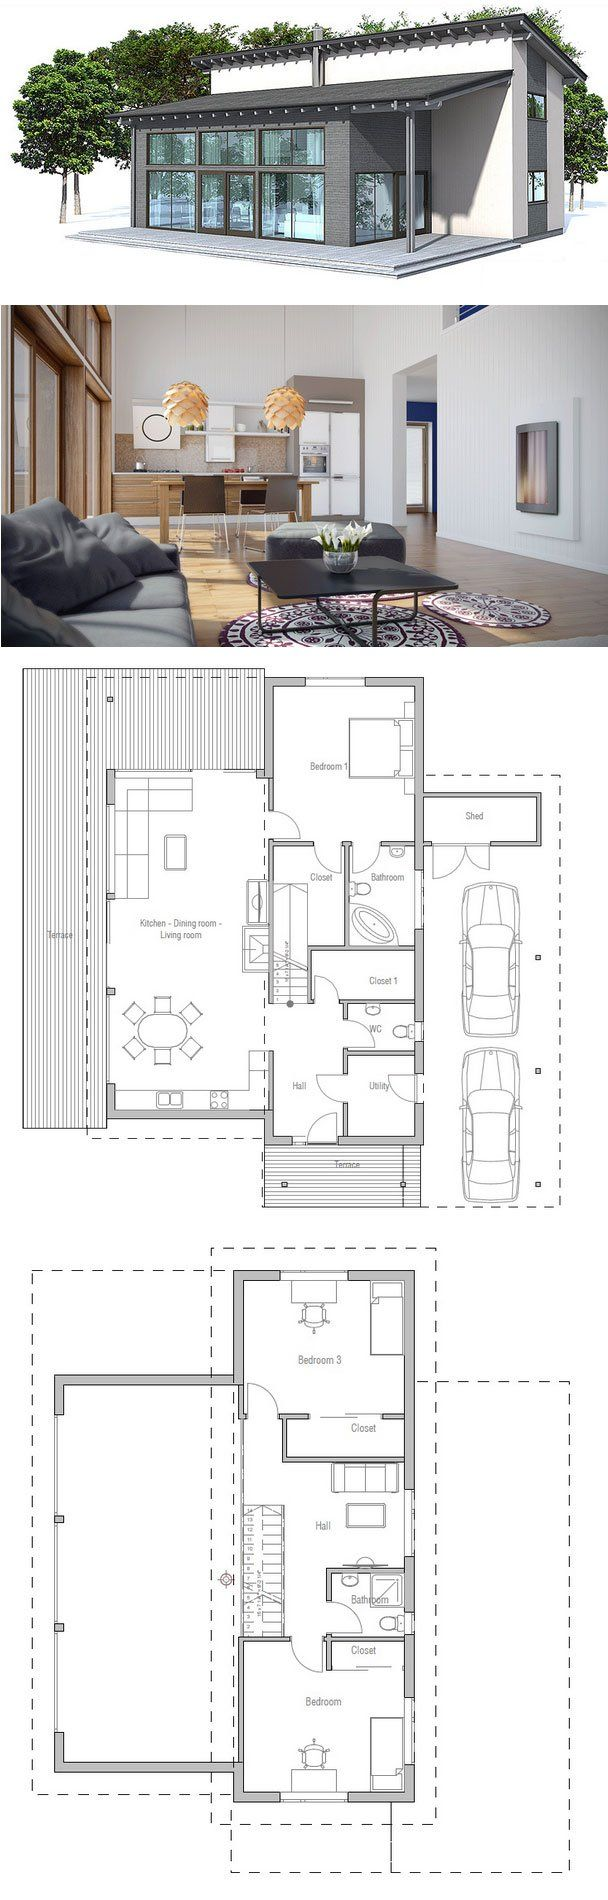 Very popular small house plan Suits well